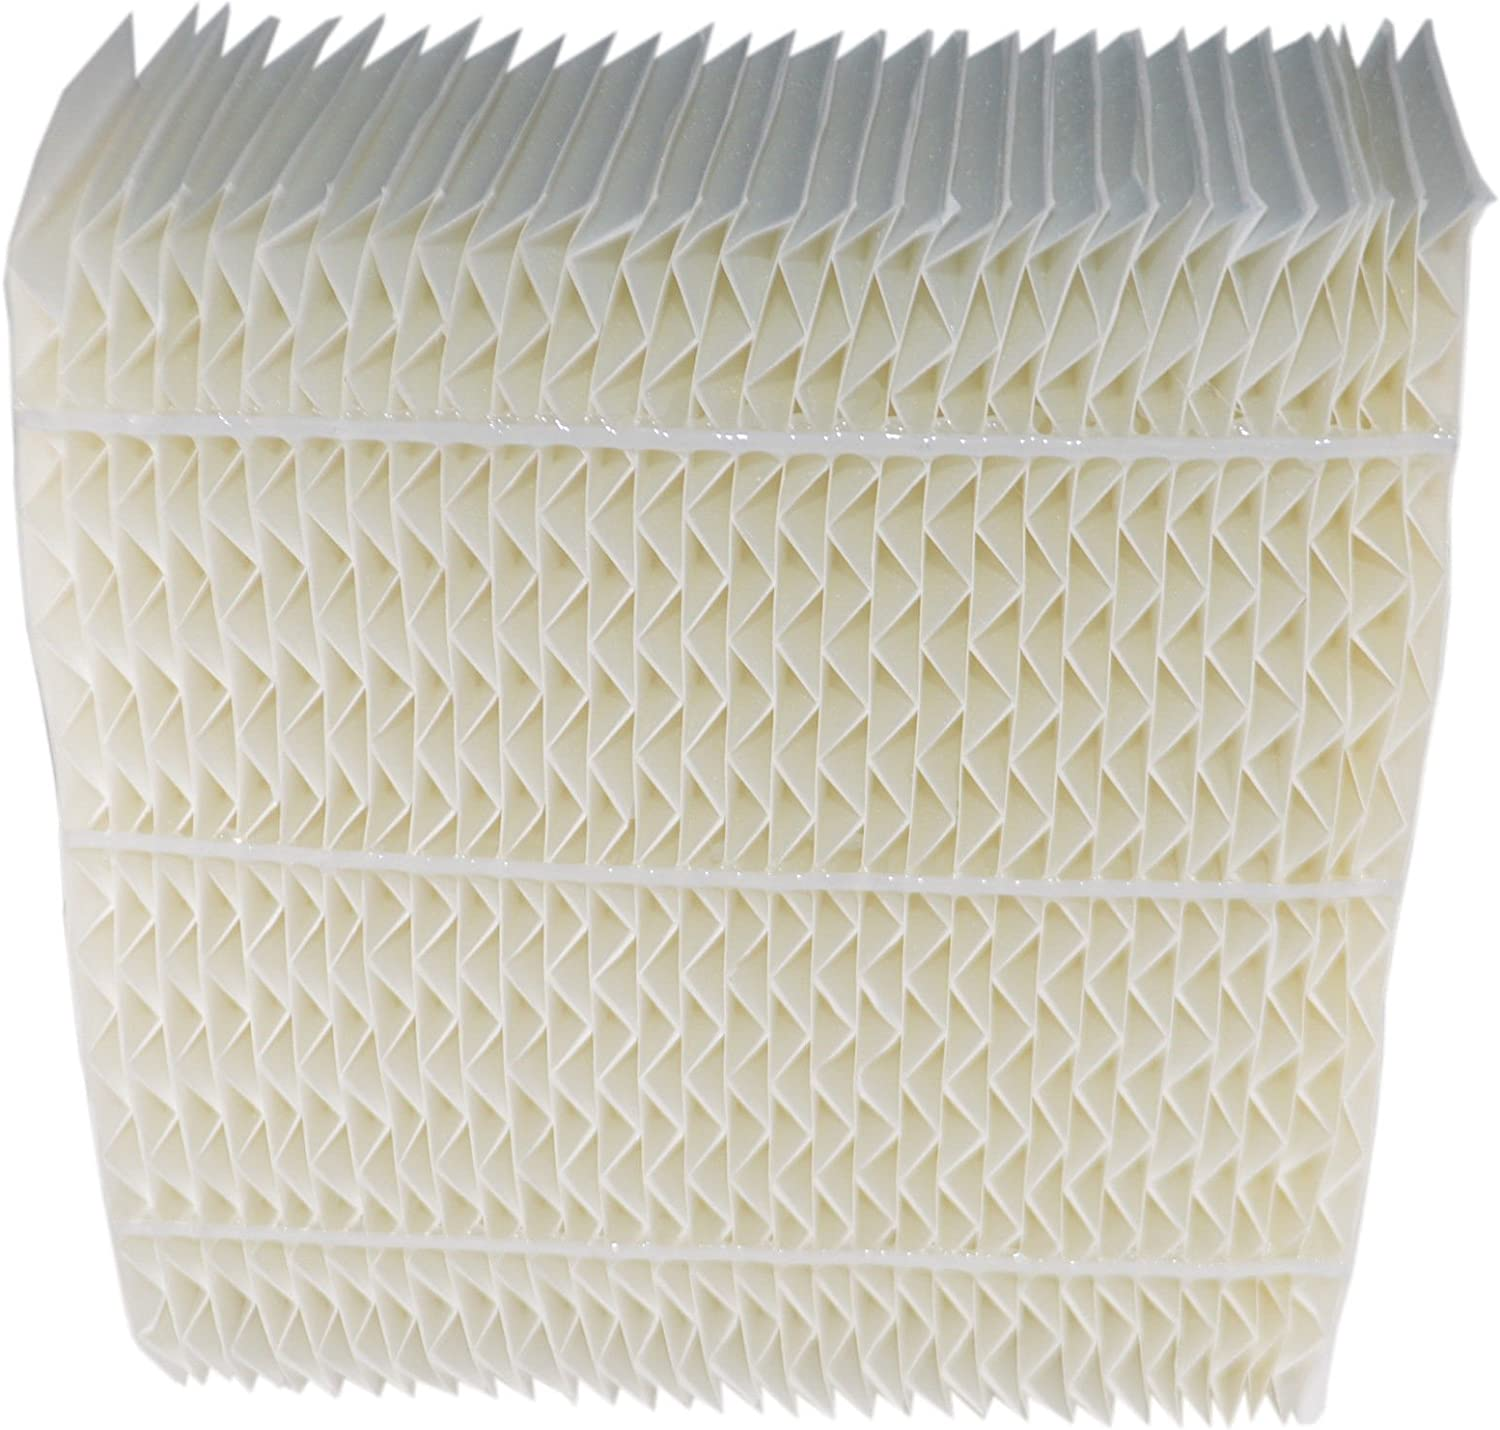 Replacement Wicks Spacesaver 800 8000 Series EP9R 500 ANTOBLE 2 ...